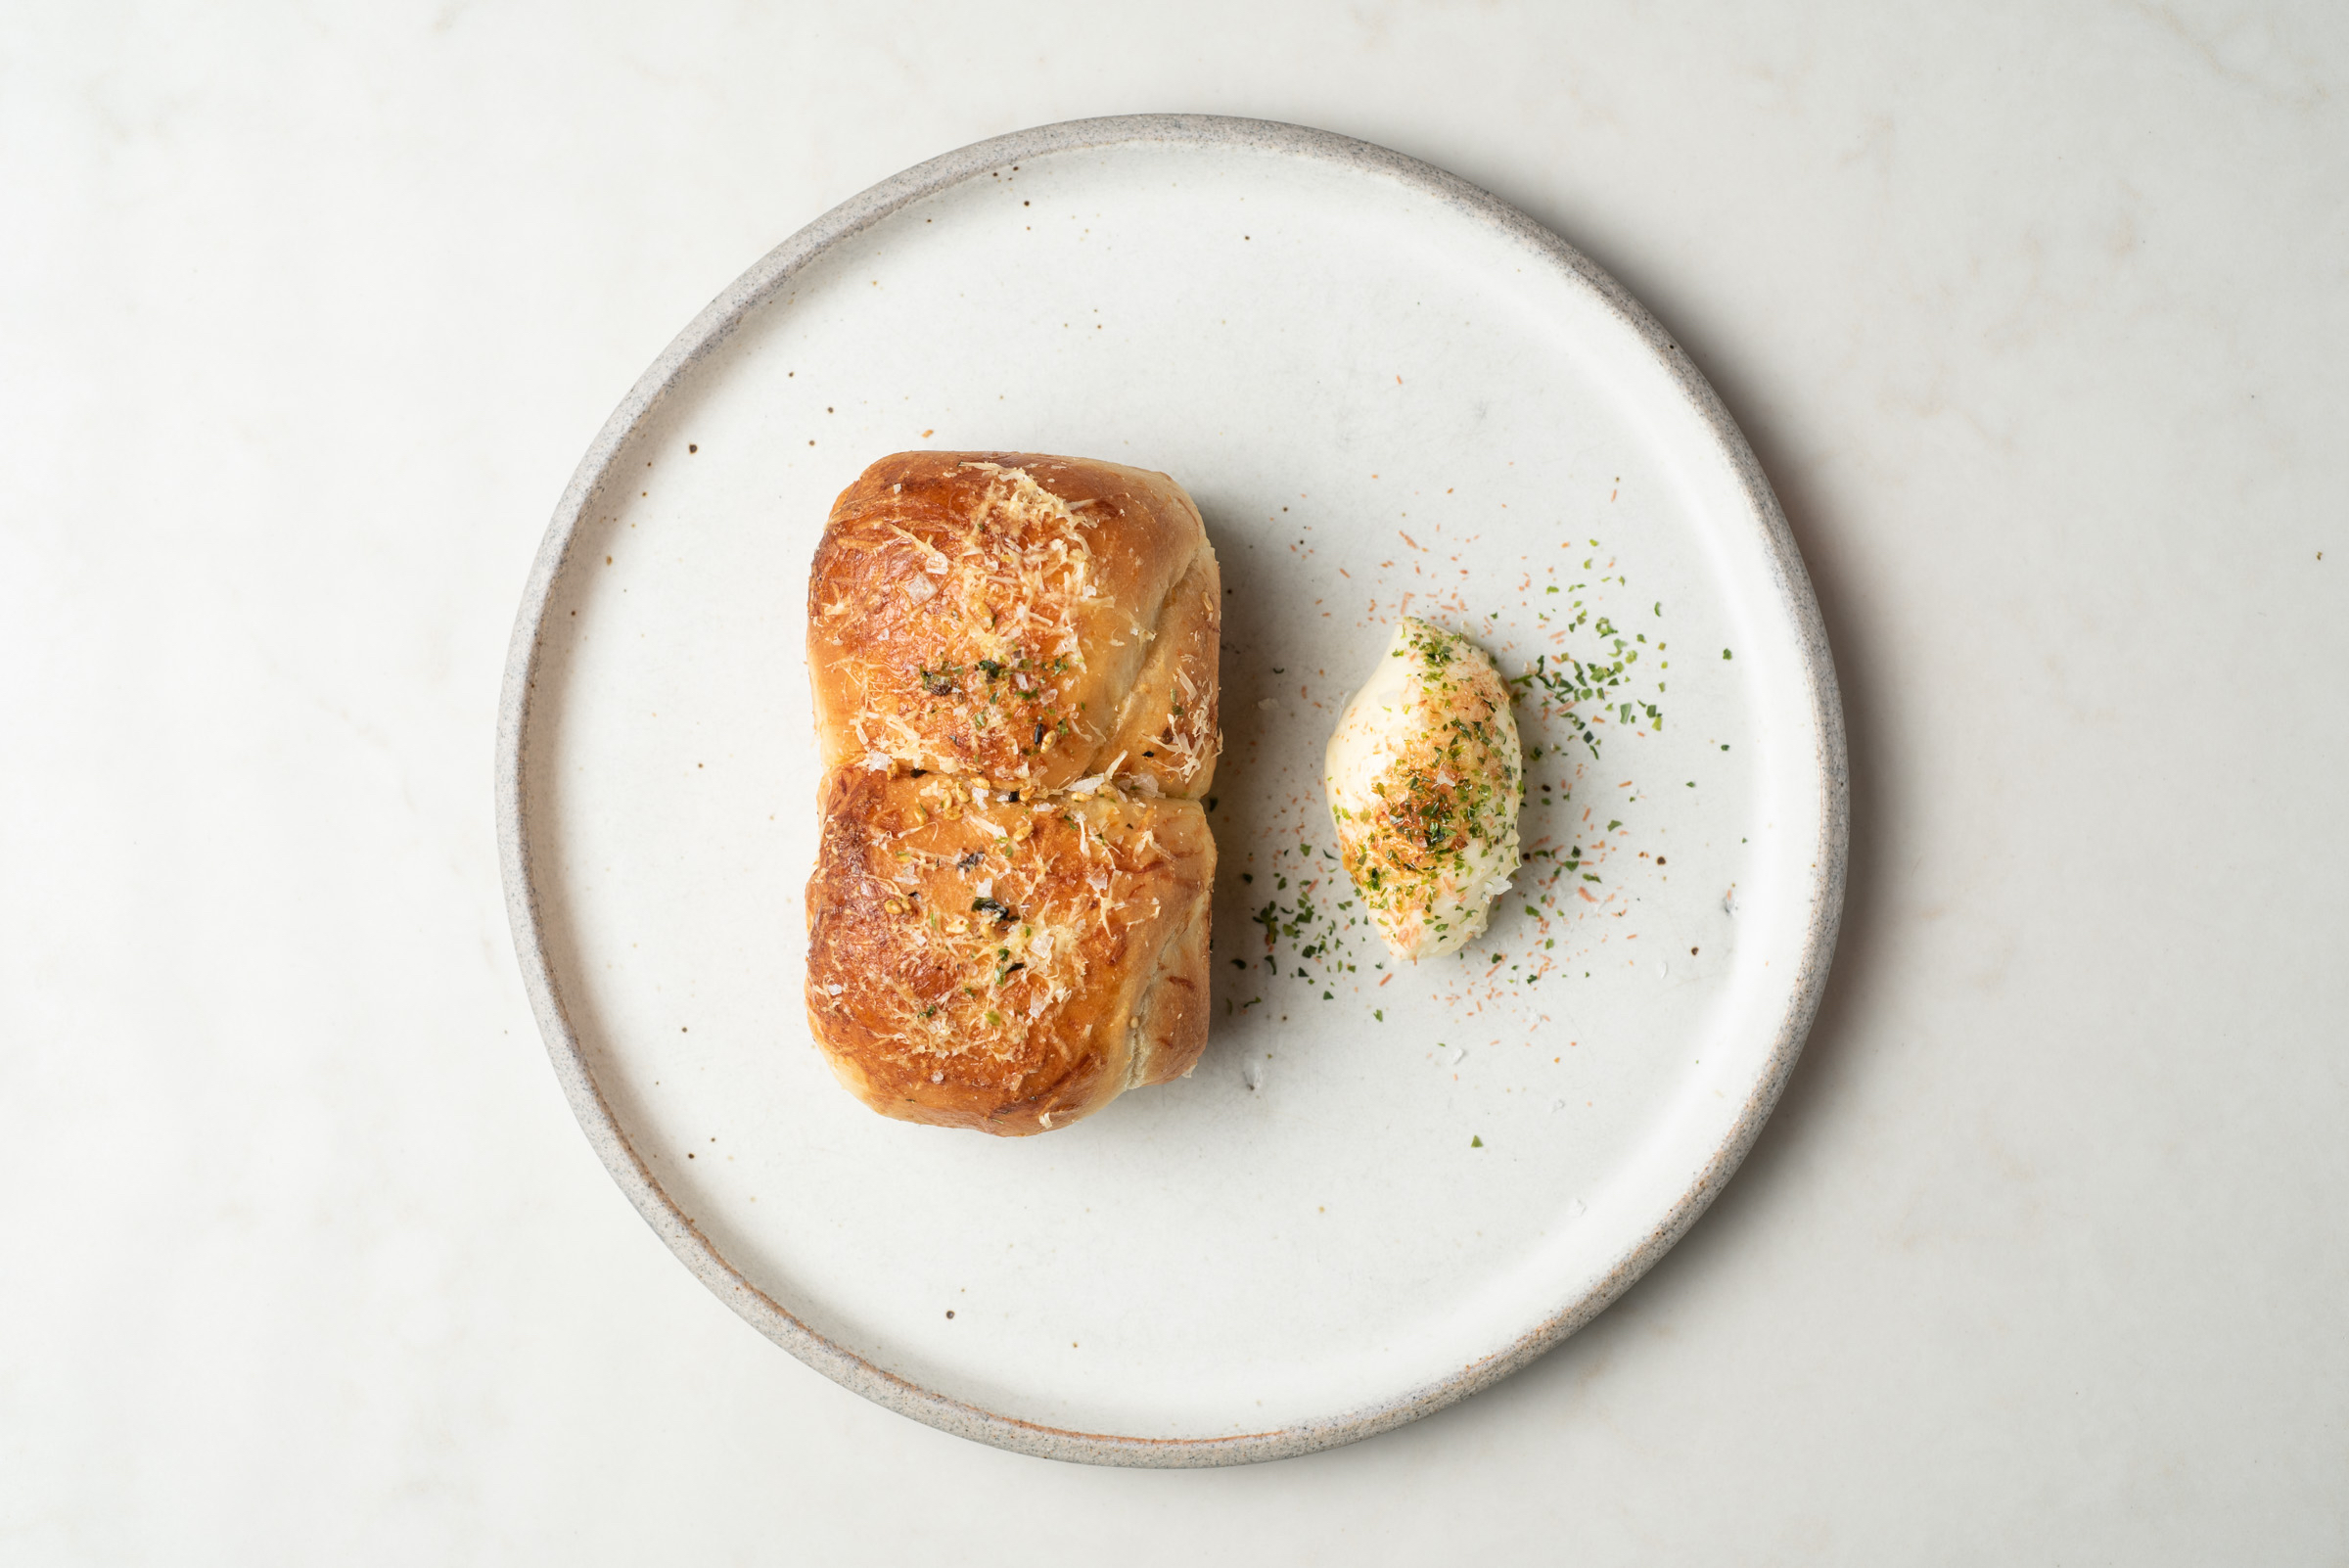 Orsa & Winston, downtown Los Angeles. Milkbread focaccia with nori cultured butter.